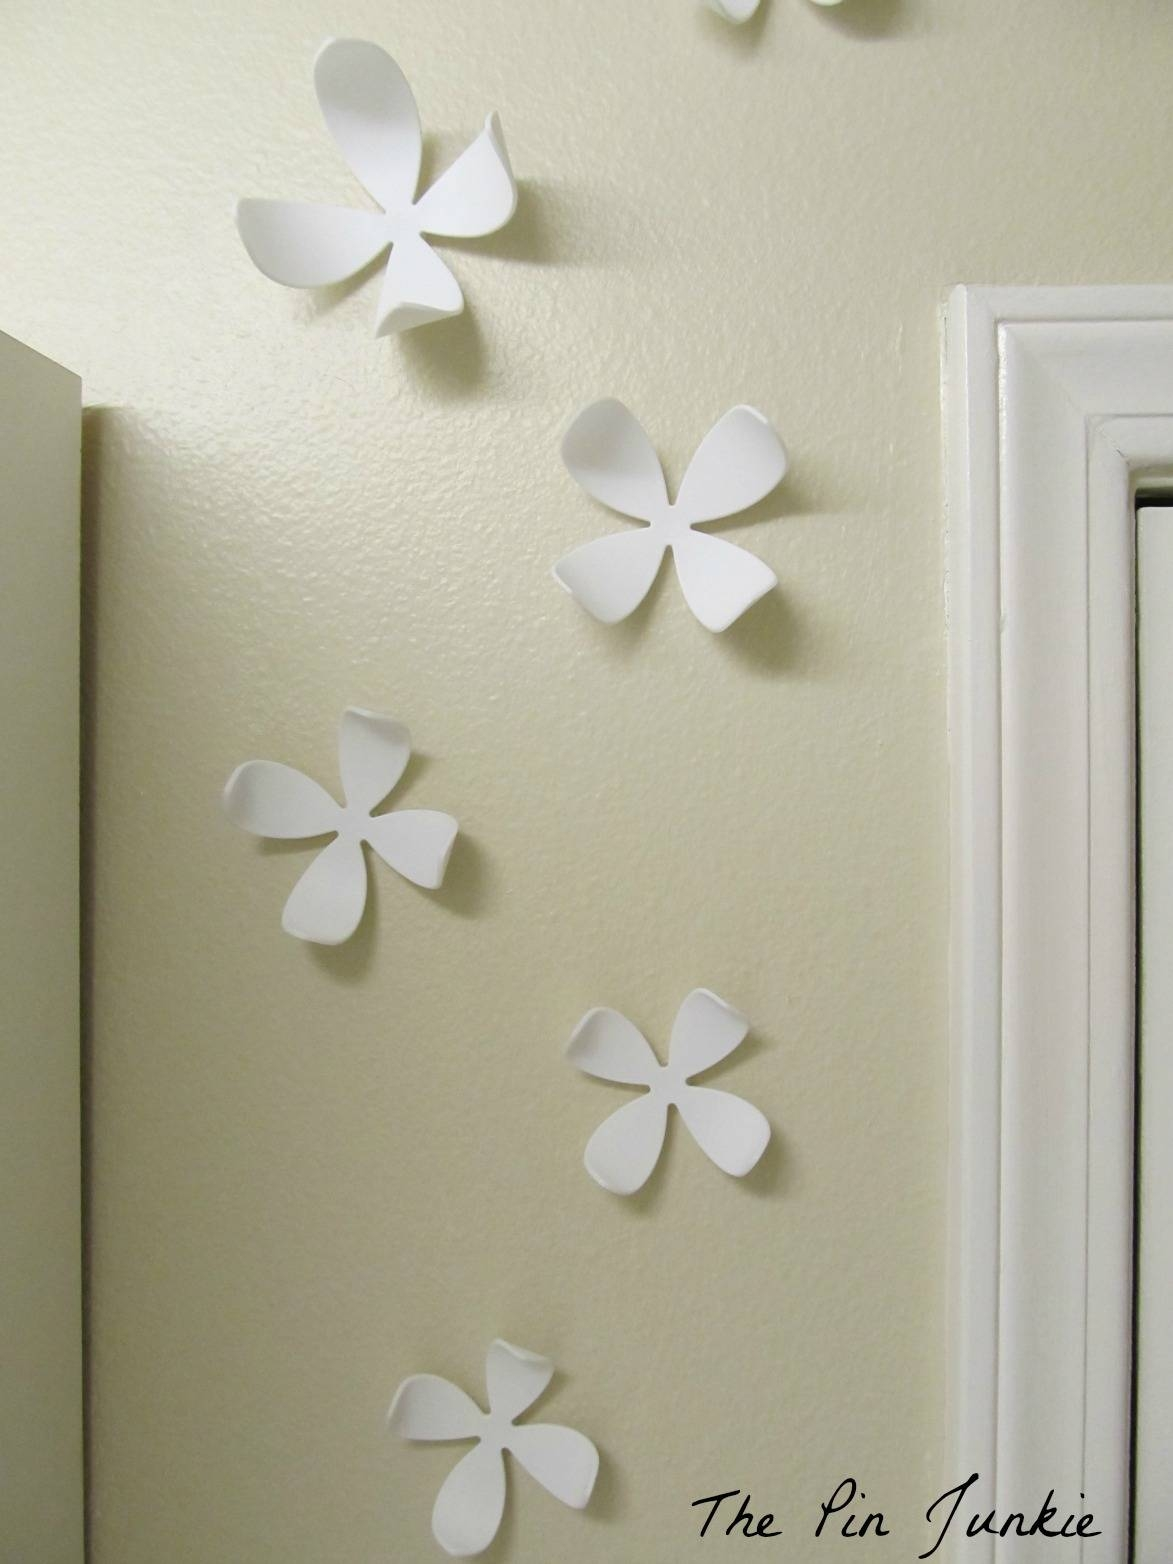 3D Flower Wall Art Umbra | Wallartideas Inside Best And Newest Umbra 3D  Flower Wall Art